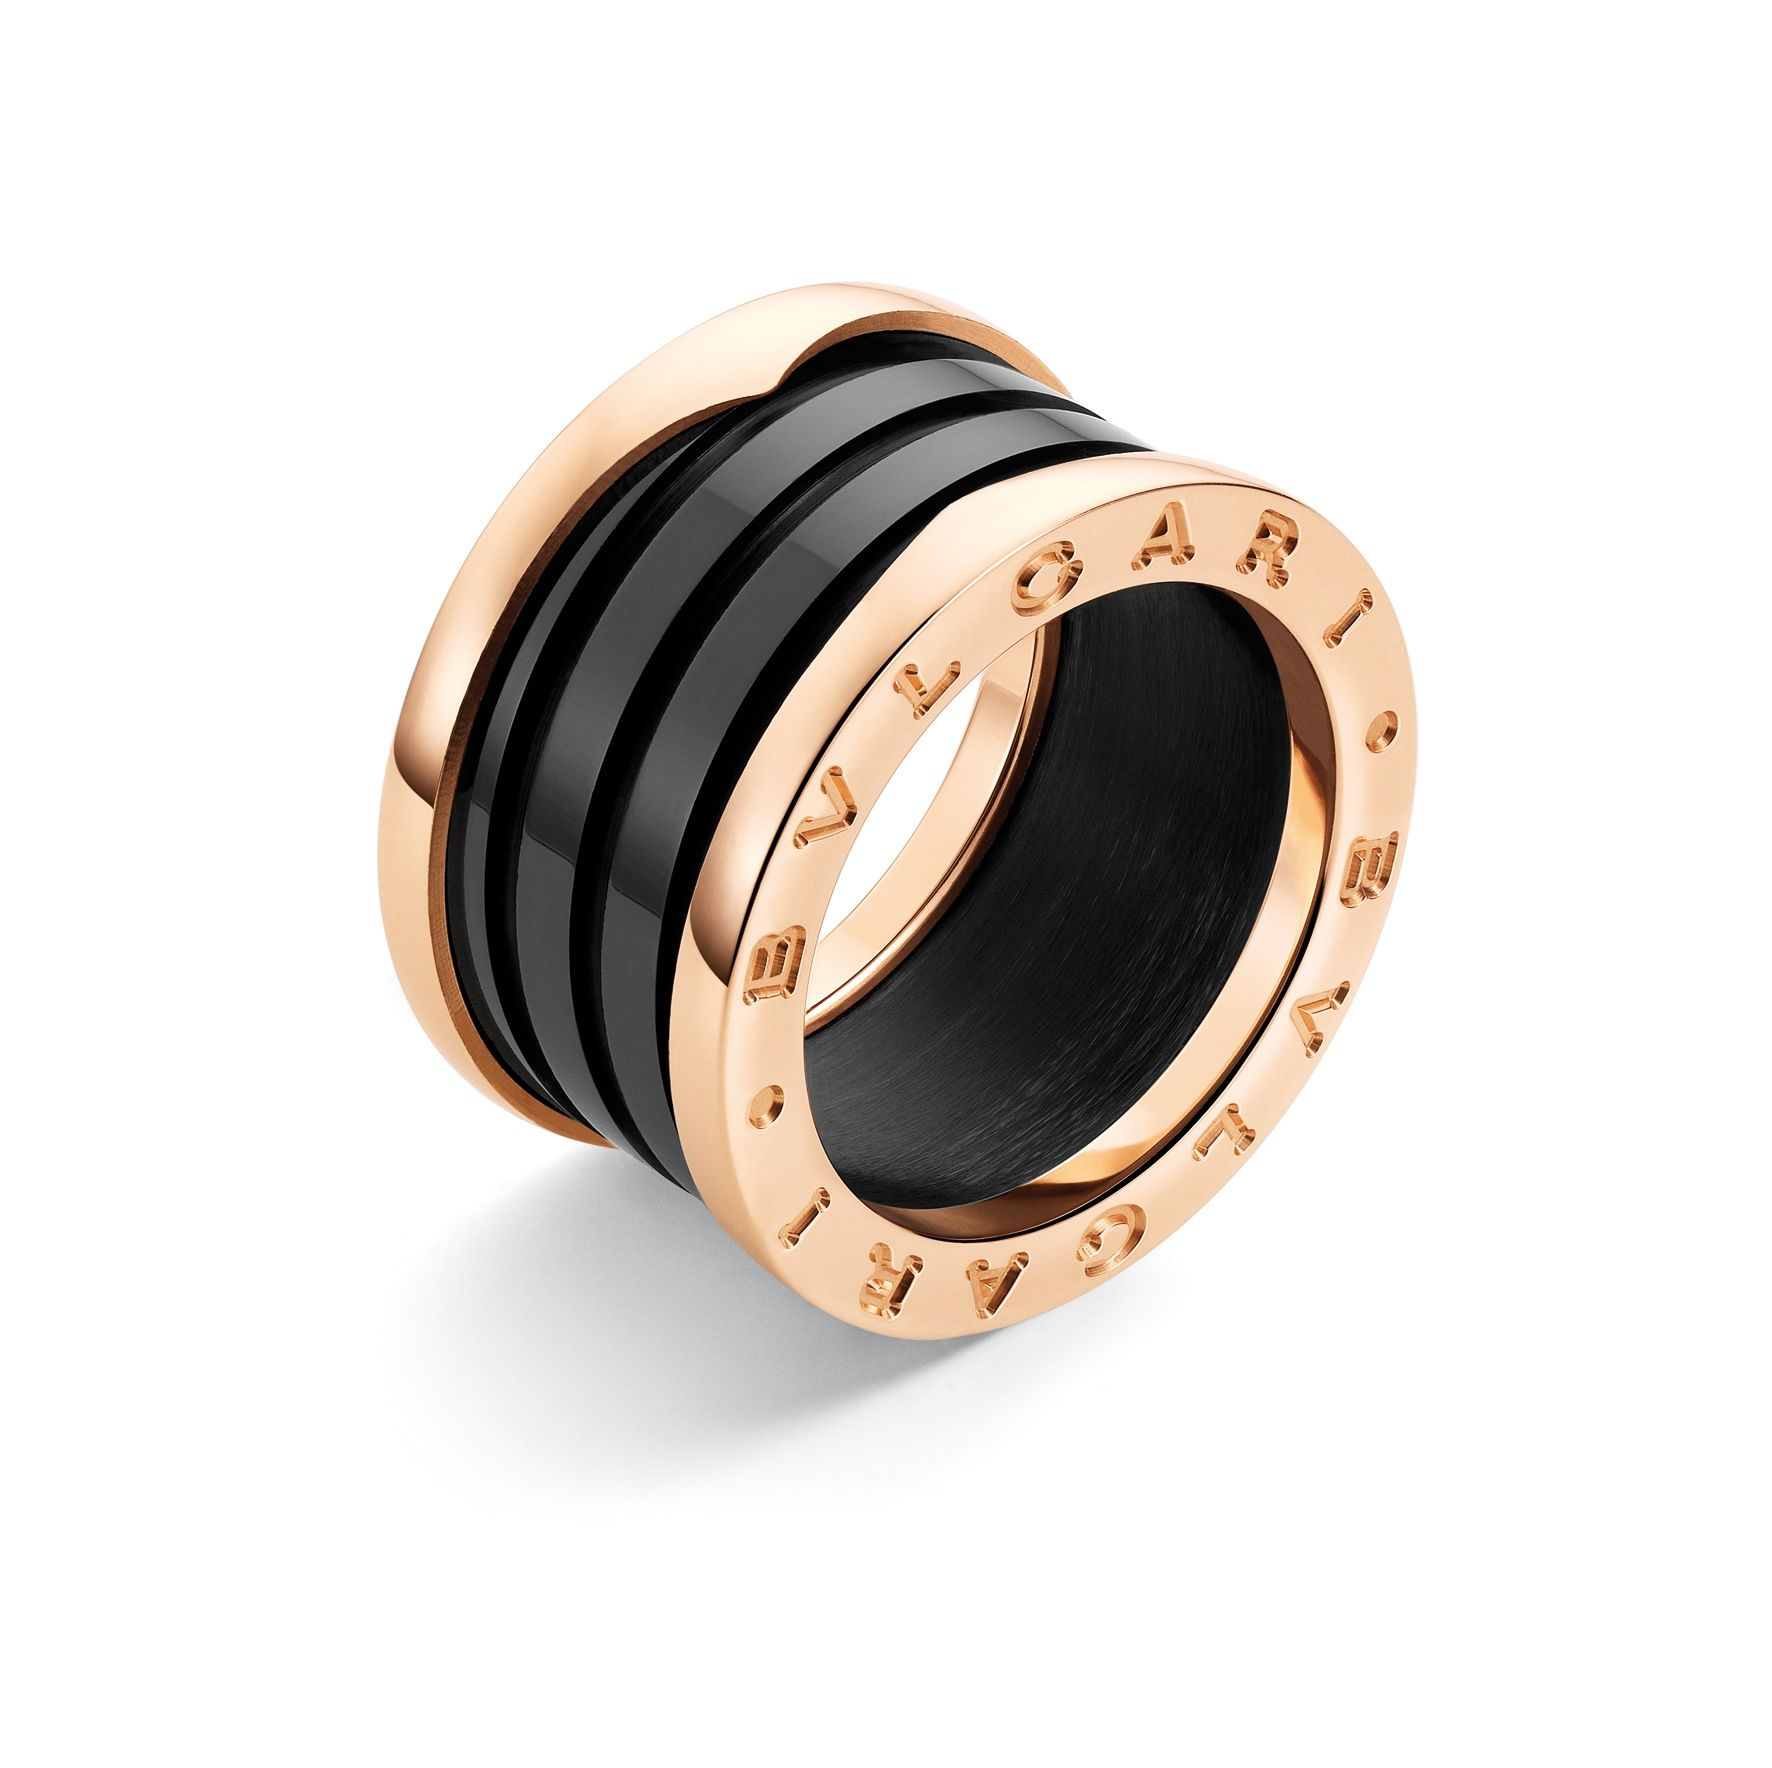 Bulgari ring in gold